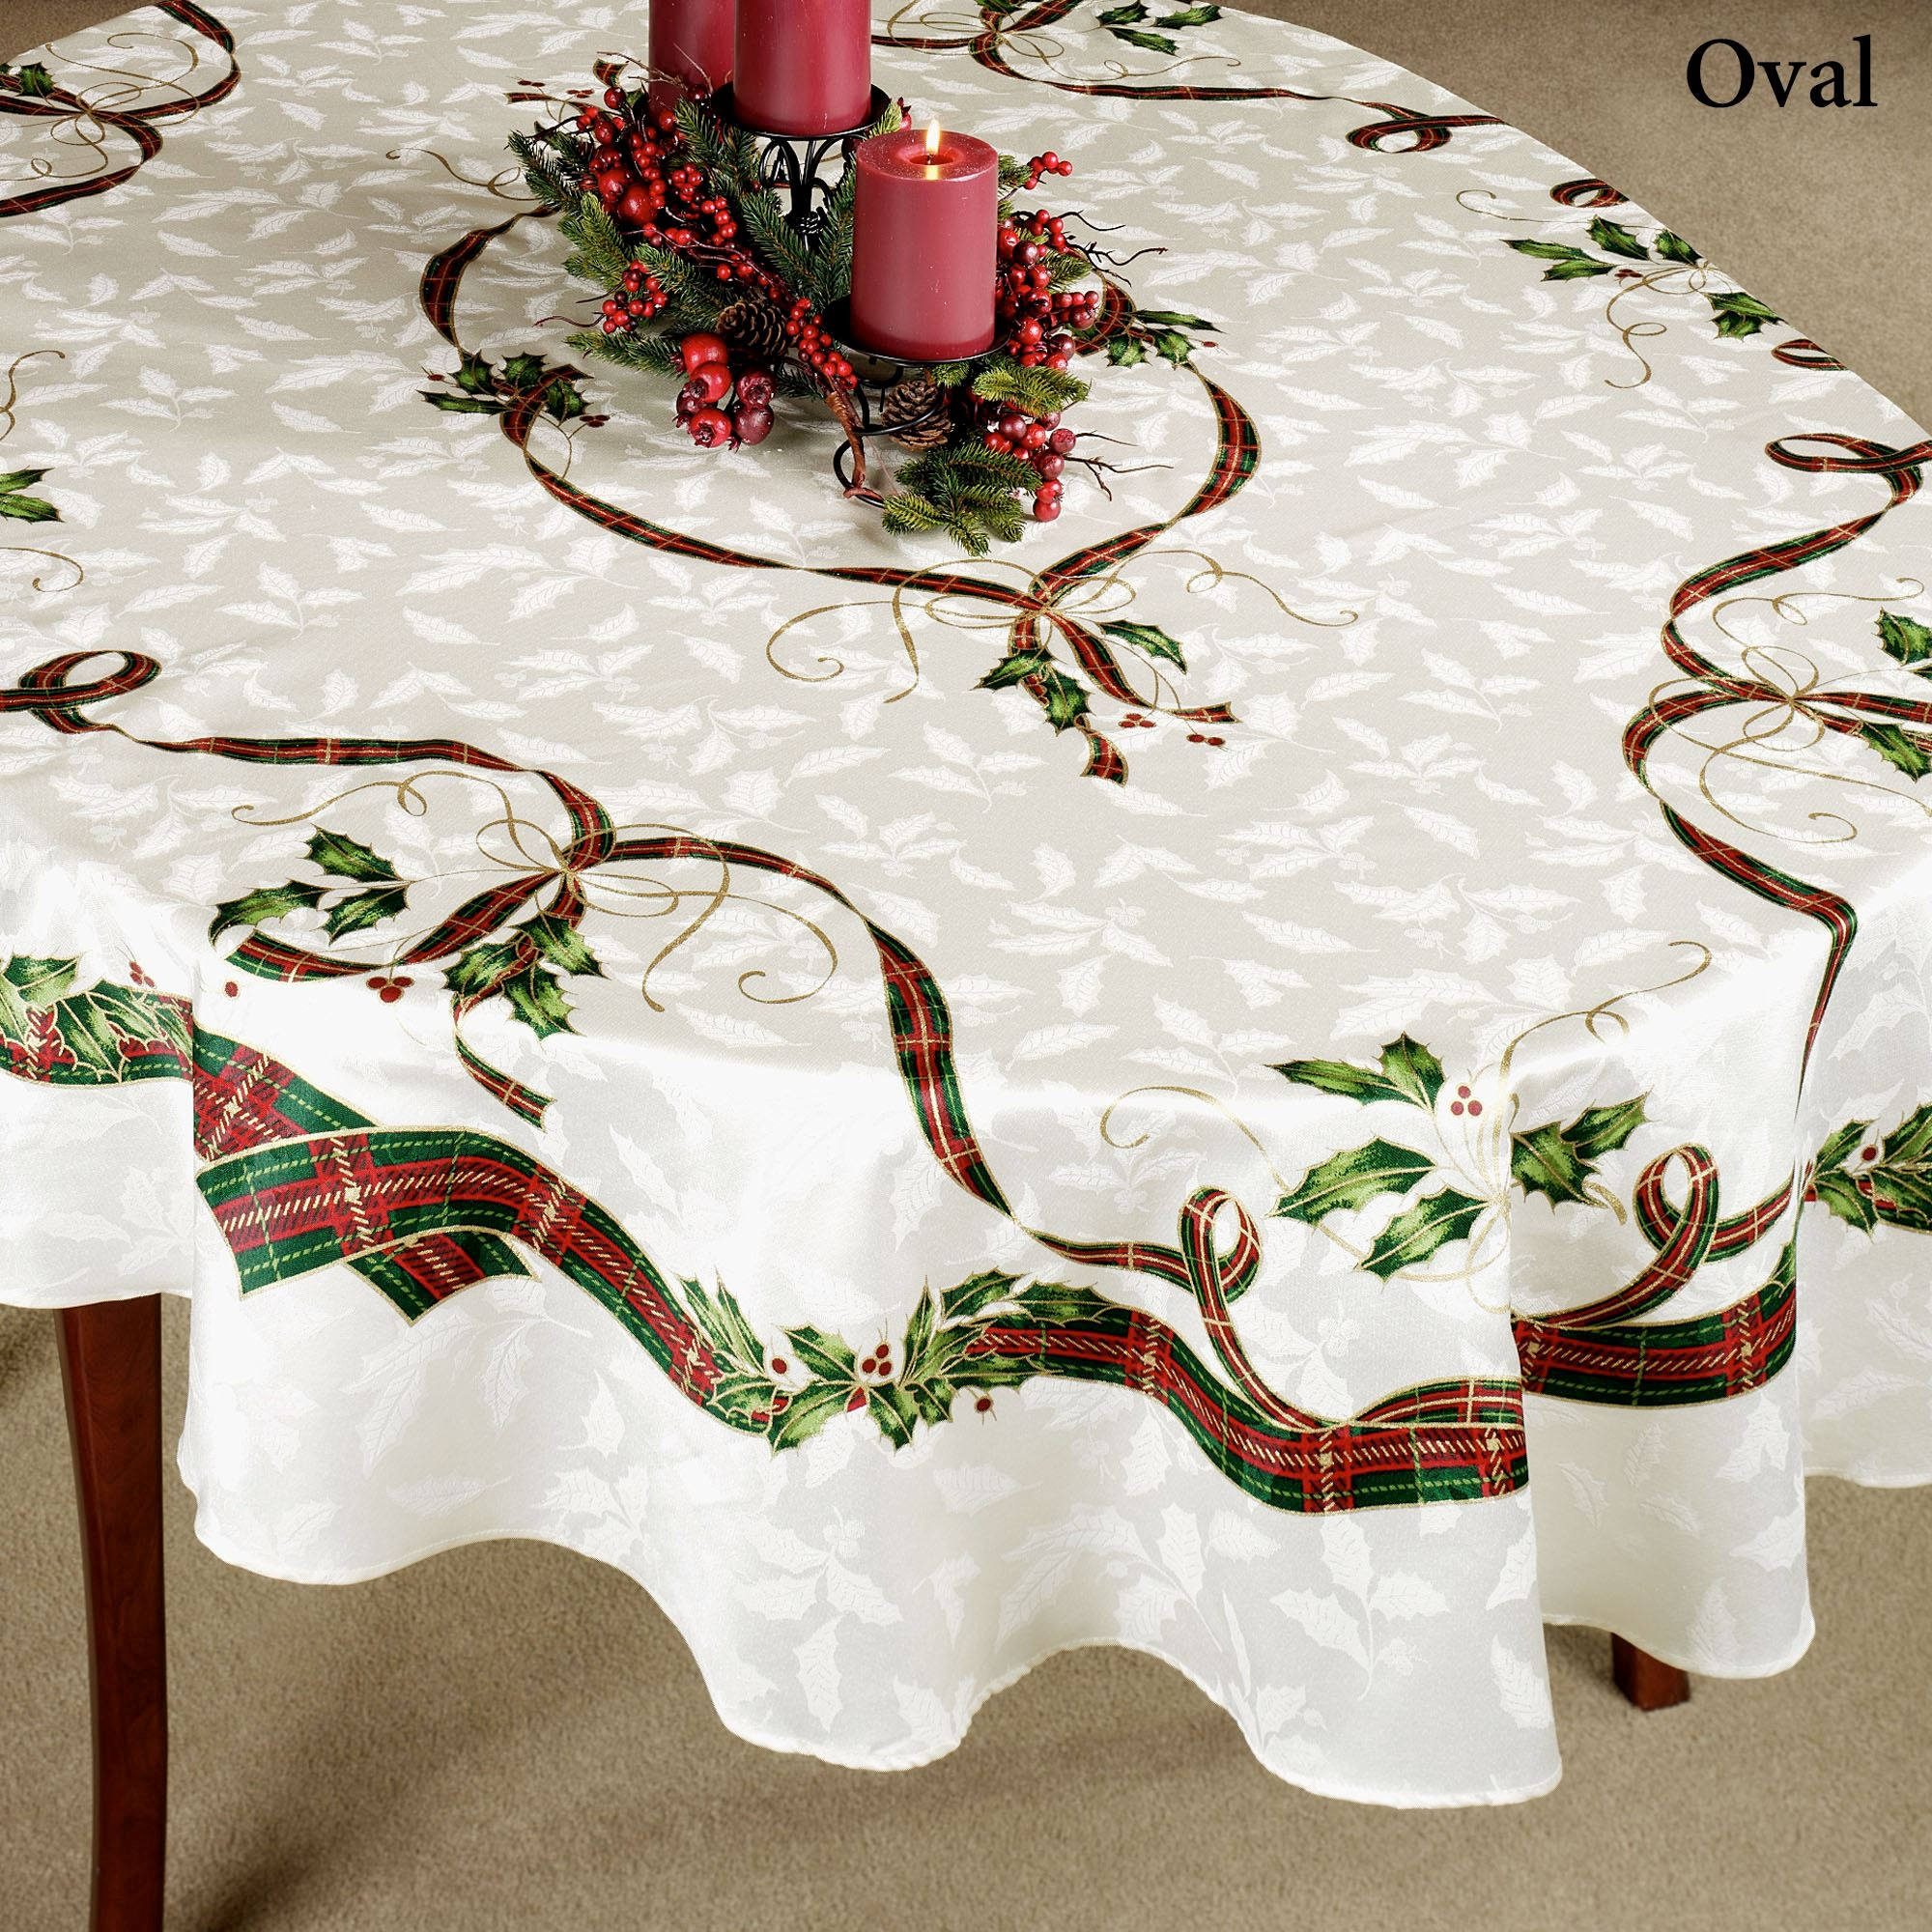 Oval Christmas Tablecloths White Oval Linen Tablecloth Christmas